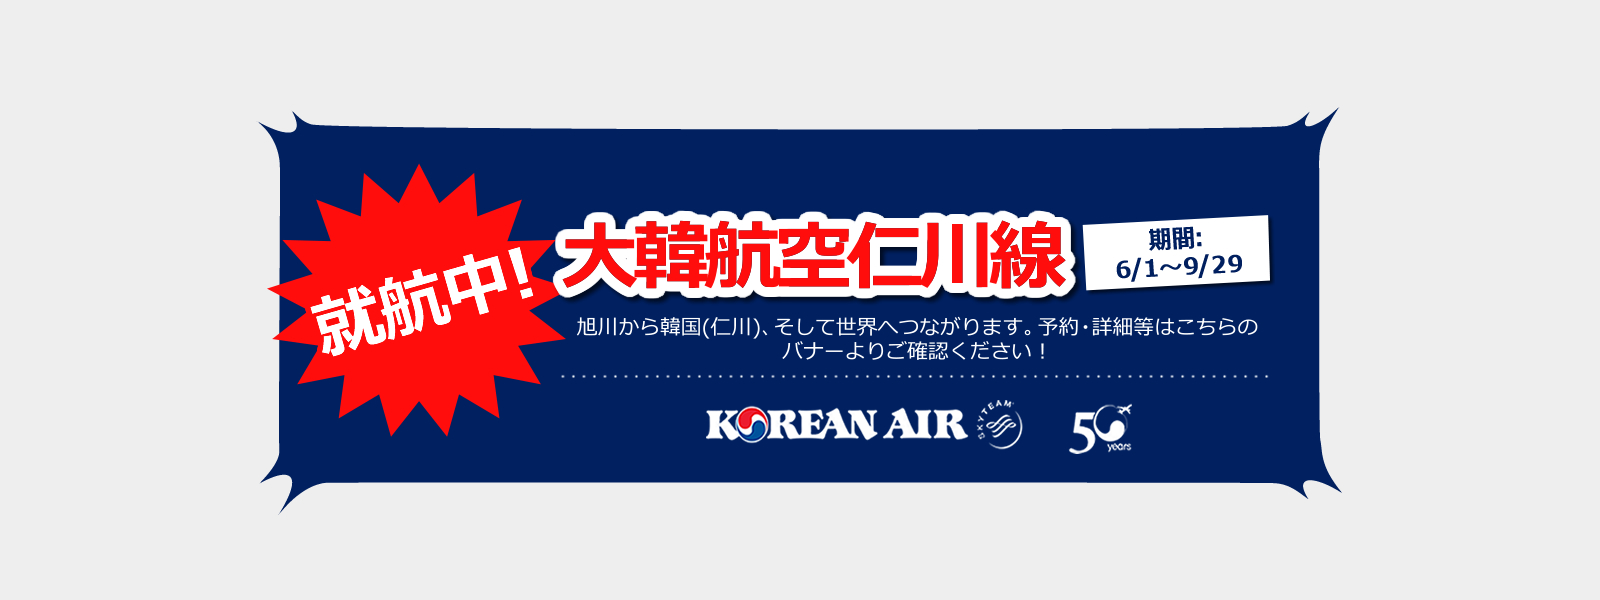 KOREAN_AIR_TOP2019